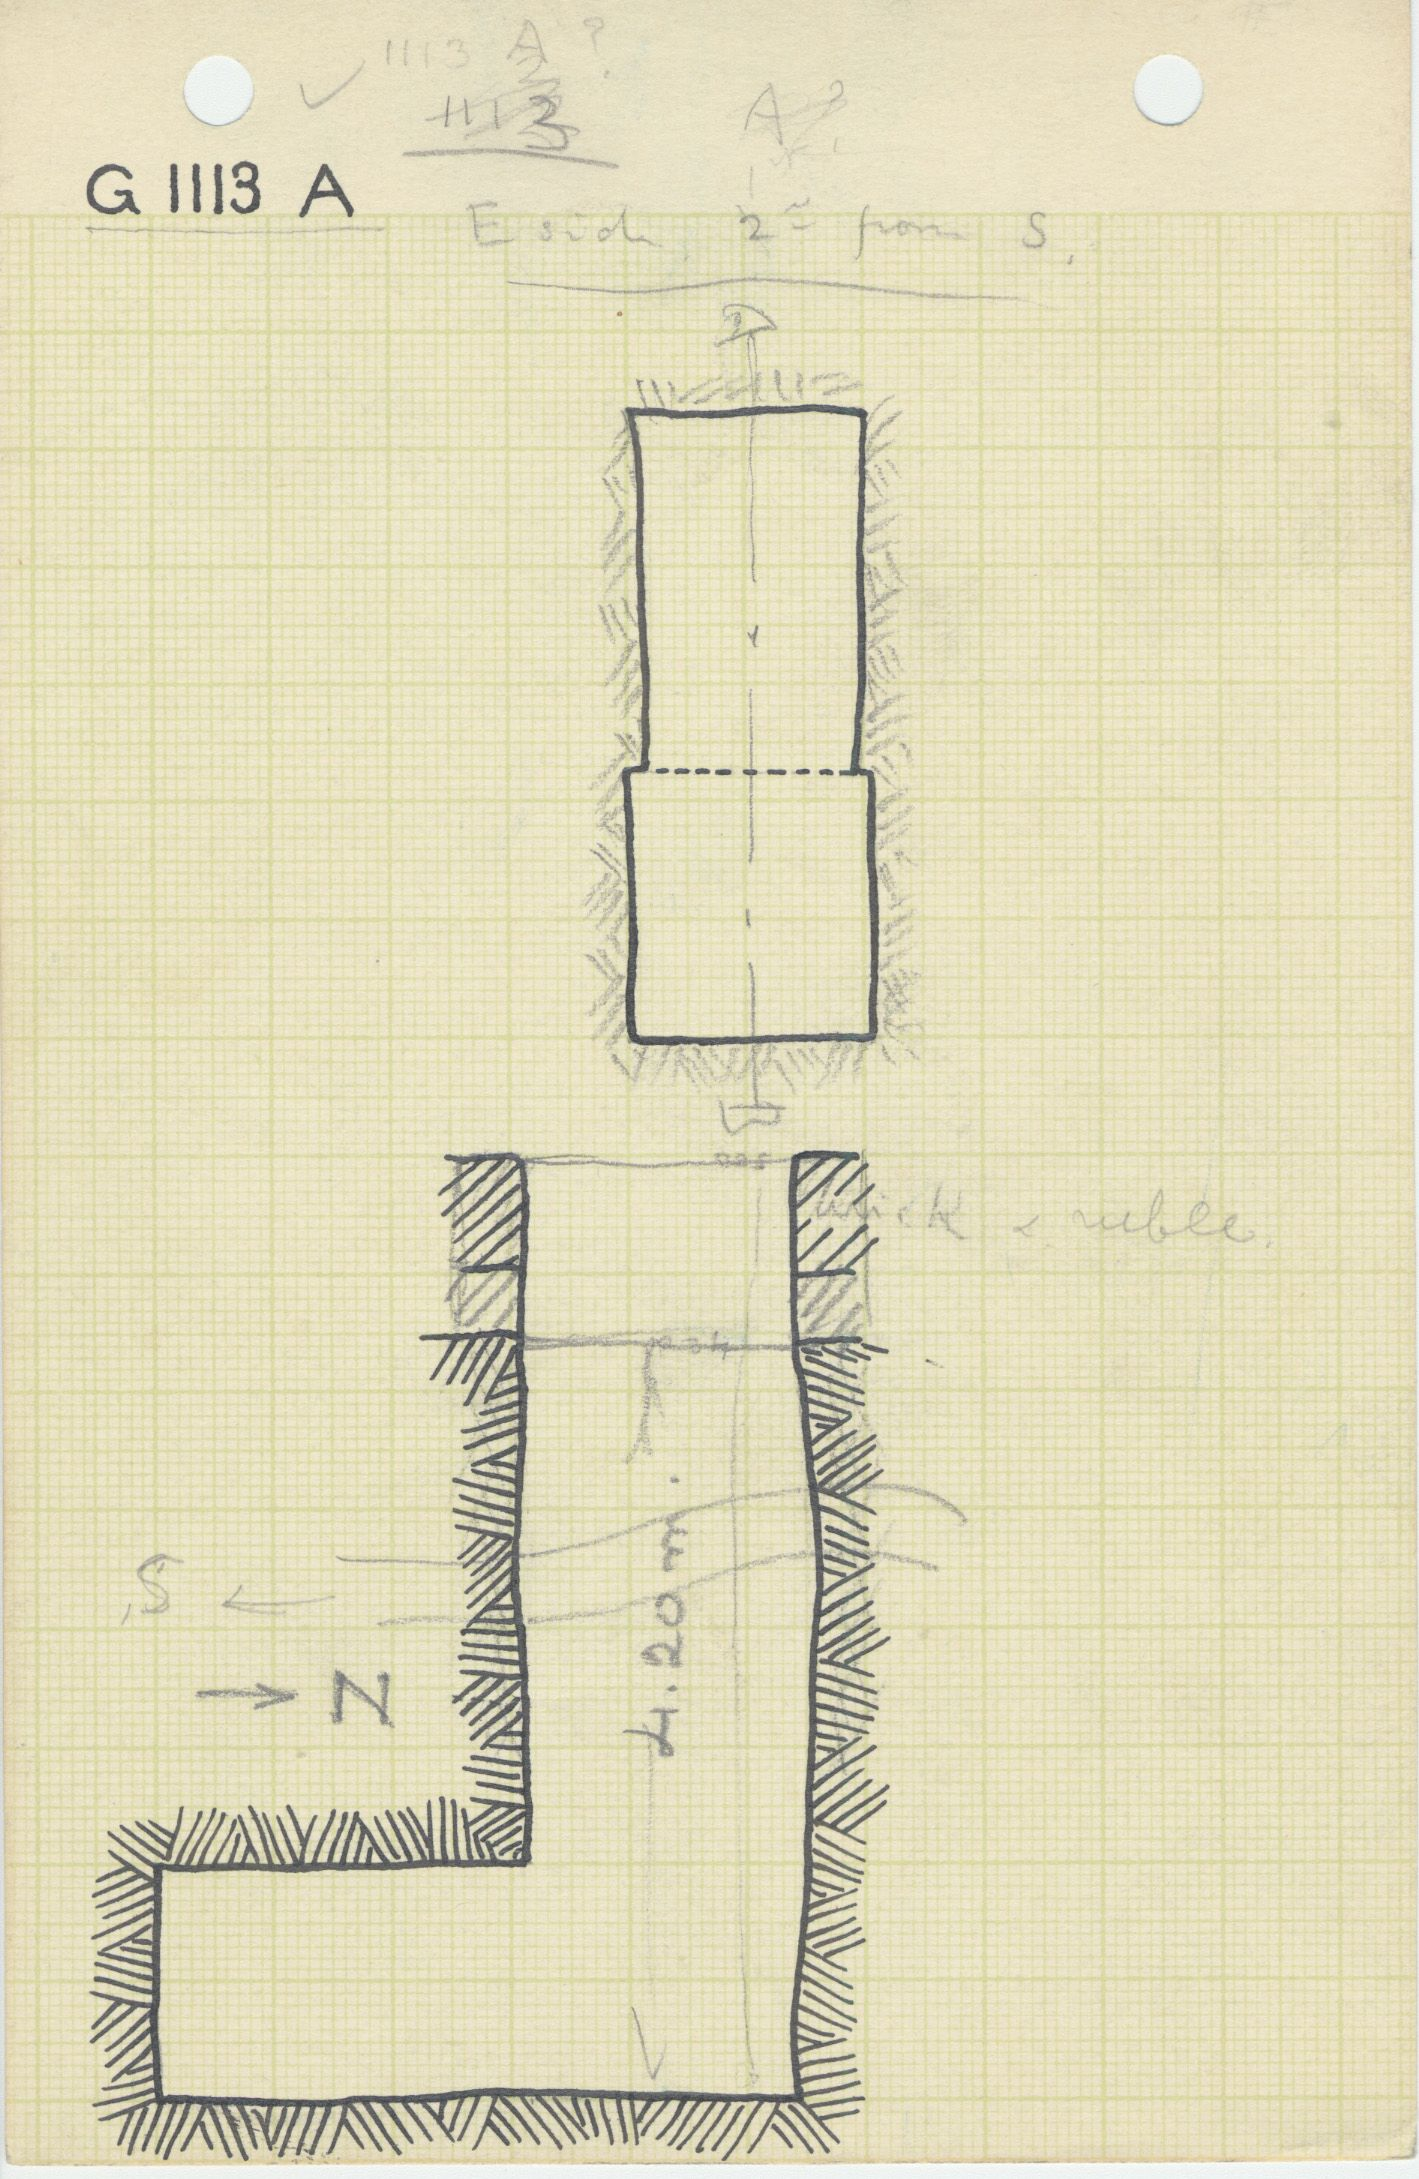 Maps and plans: G 1112+1113: G 1113, Shaft A